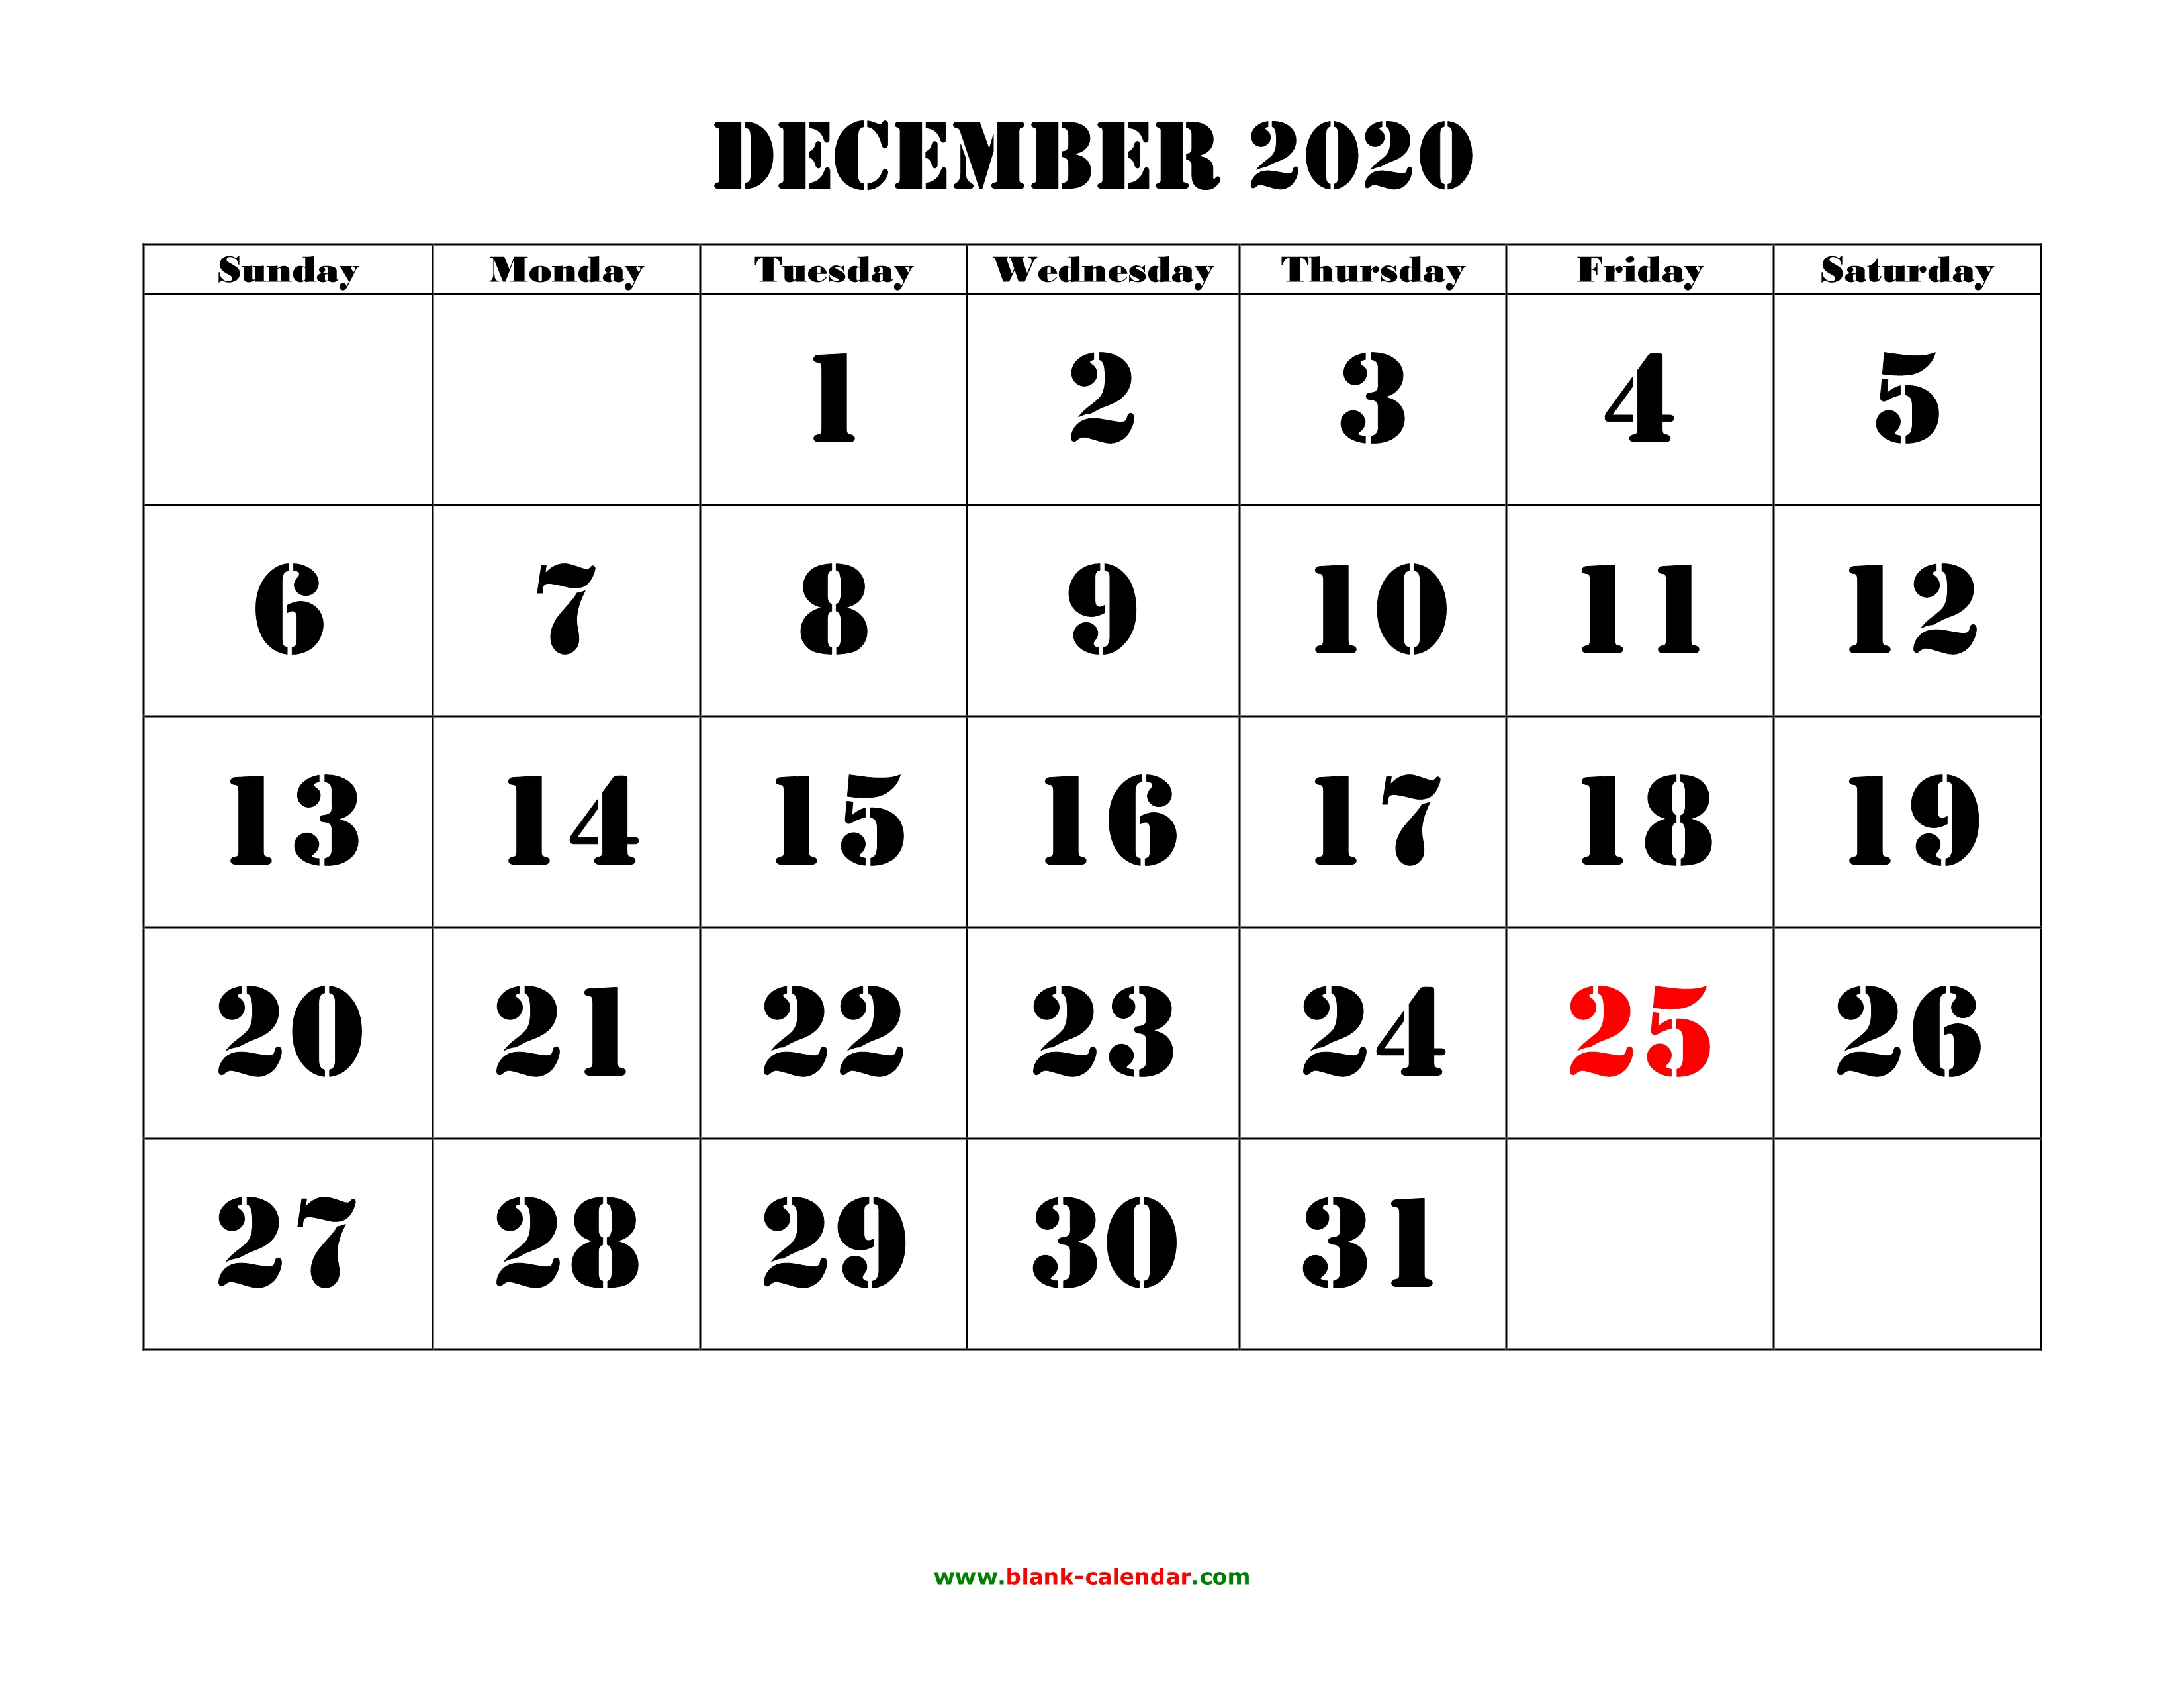 photo relating to December Printable Calendar Free identify December 2020 Printable Calendar Absolutely free Down load Every month